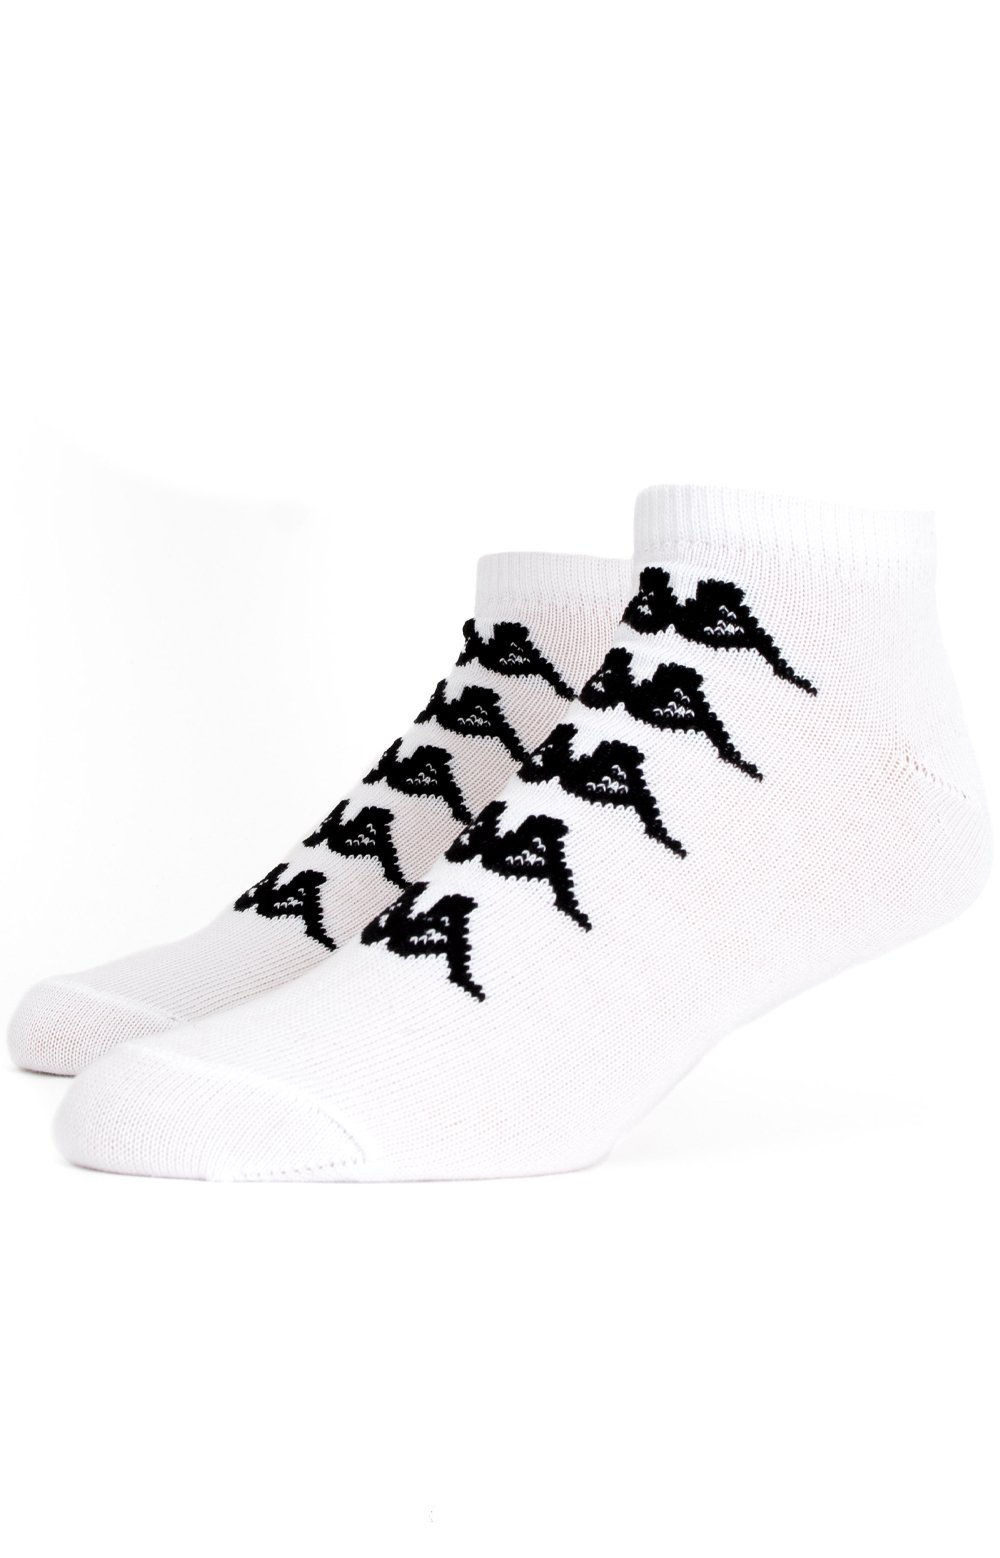 Authentic Assis Socks - White